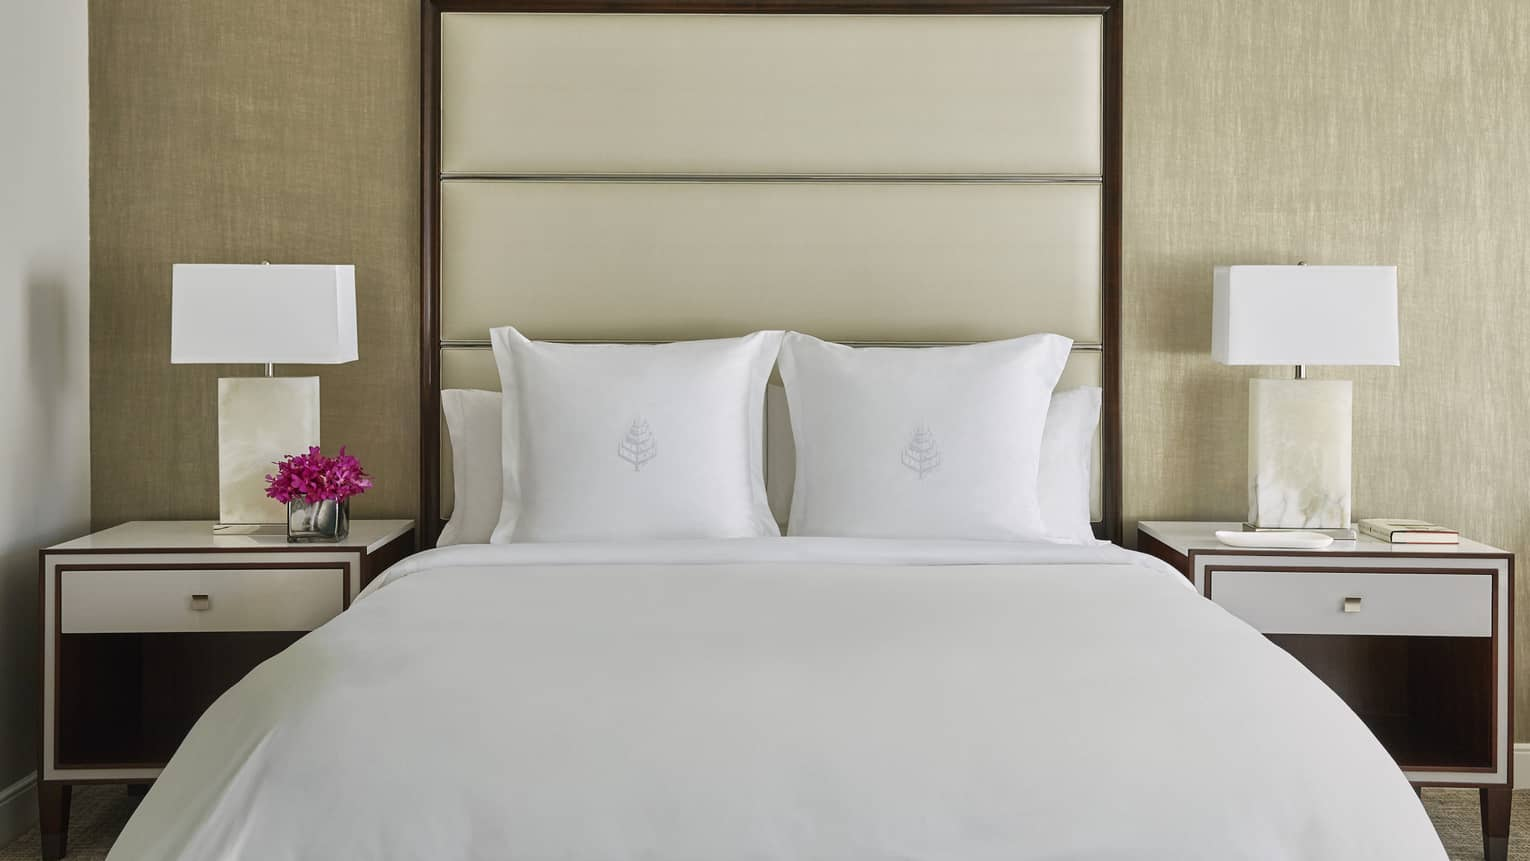 Deluxe Accessible Room head-on view of bed with white linens, tall padded beige headboard, nightstands with lamps